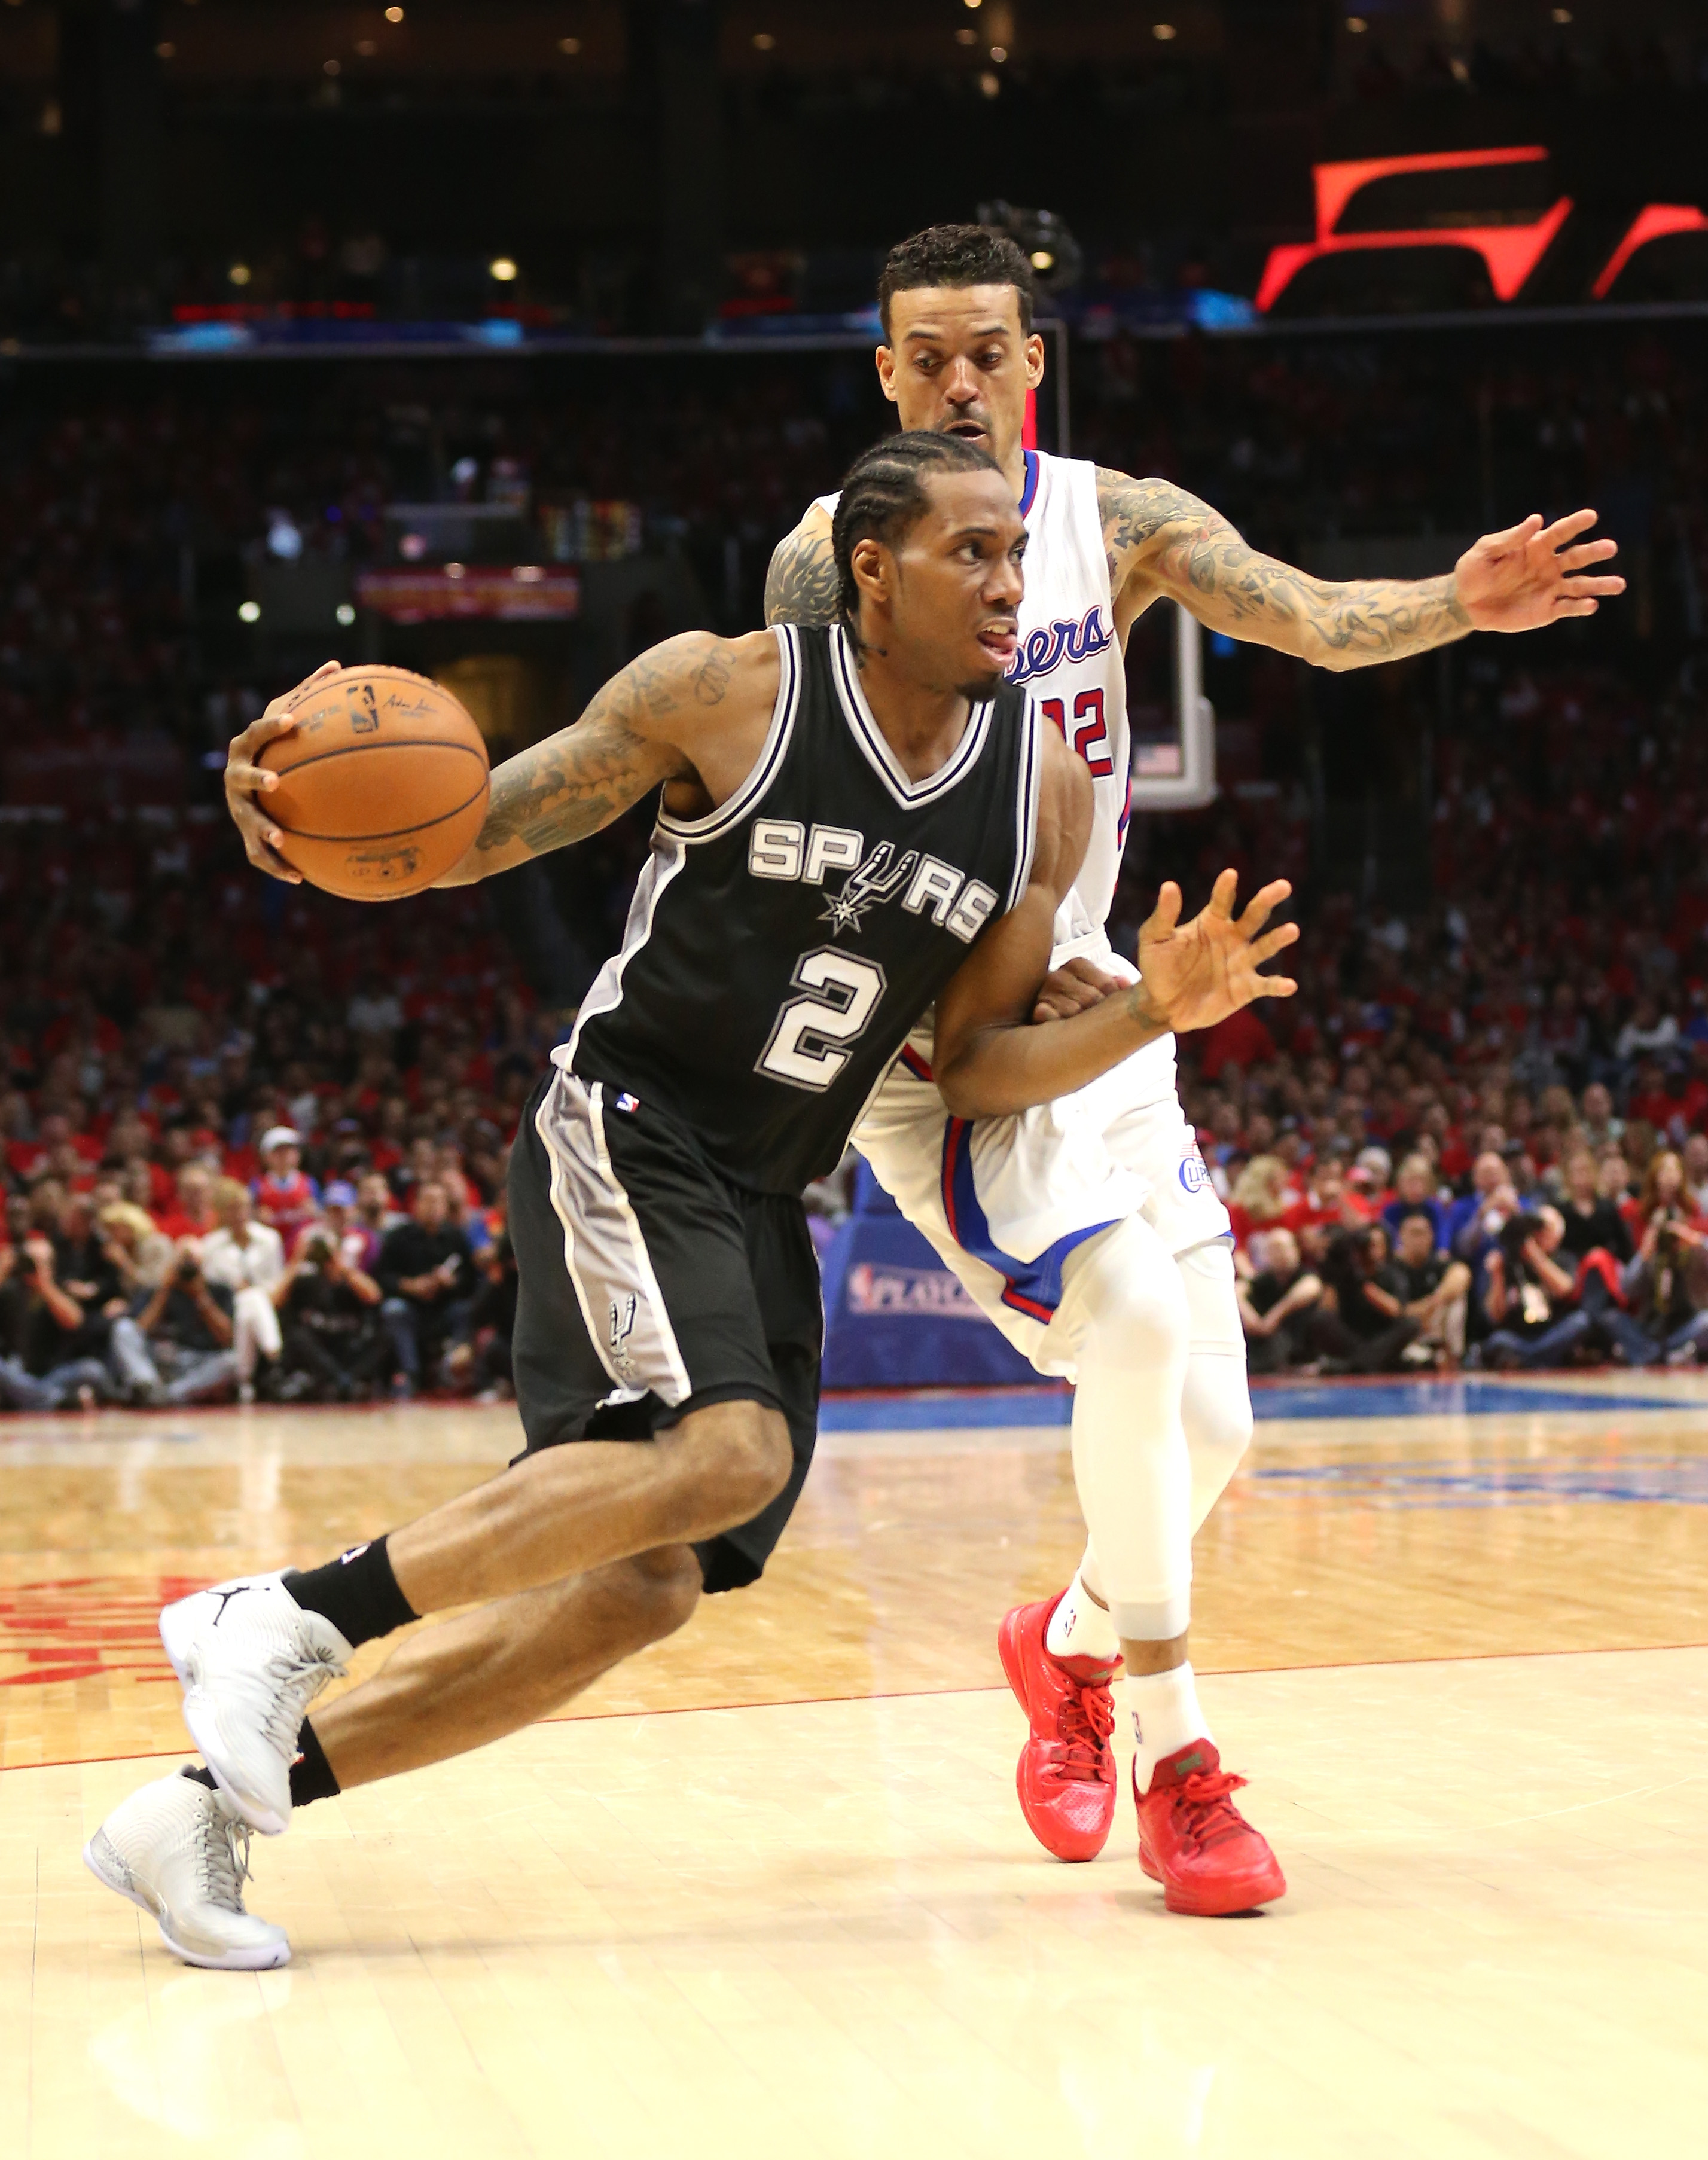 LOS ANGELES, CA - APRIL 19:  Kawhi Leonard #2 of the San Antonio Spurs drives around Matt Barnes #22 of the Los Angeles Clippers during Game One of the Western Conference quarterfinals of the 2015 NBA Playoffs at Staples Center on April 19, 2015 in Los An